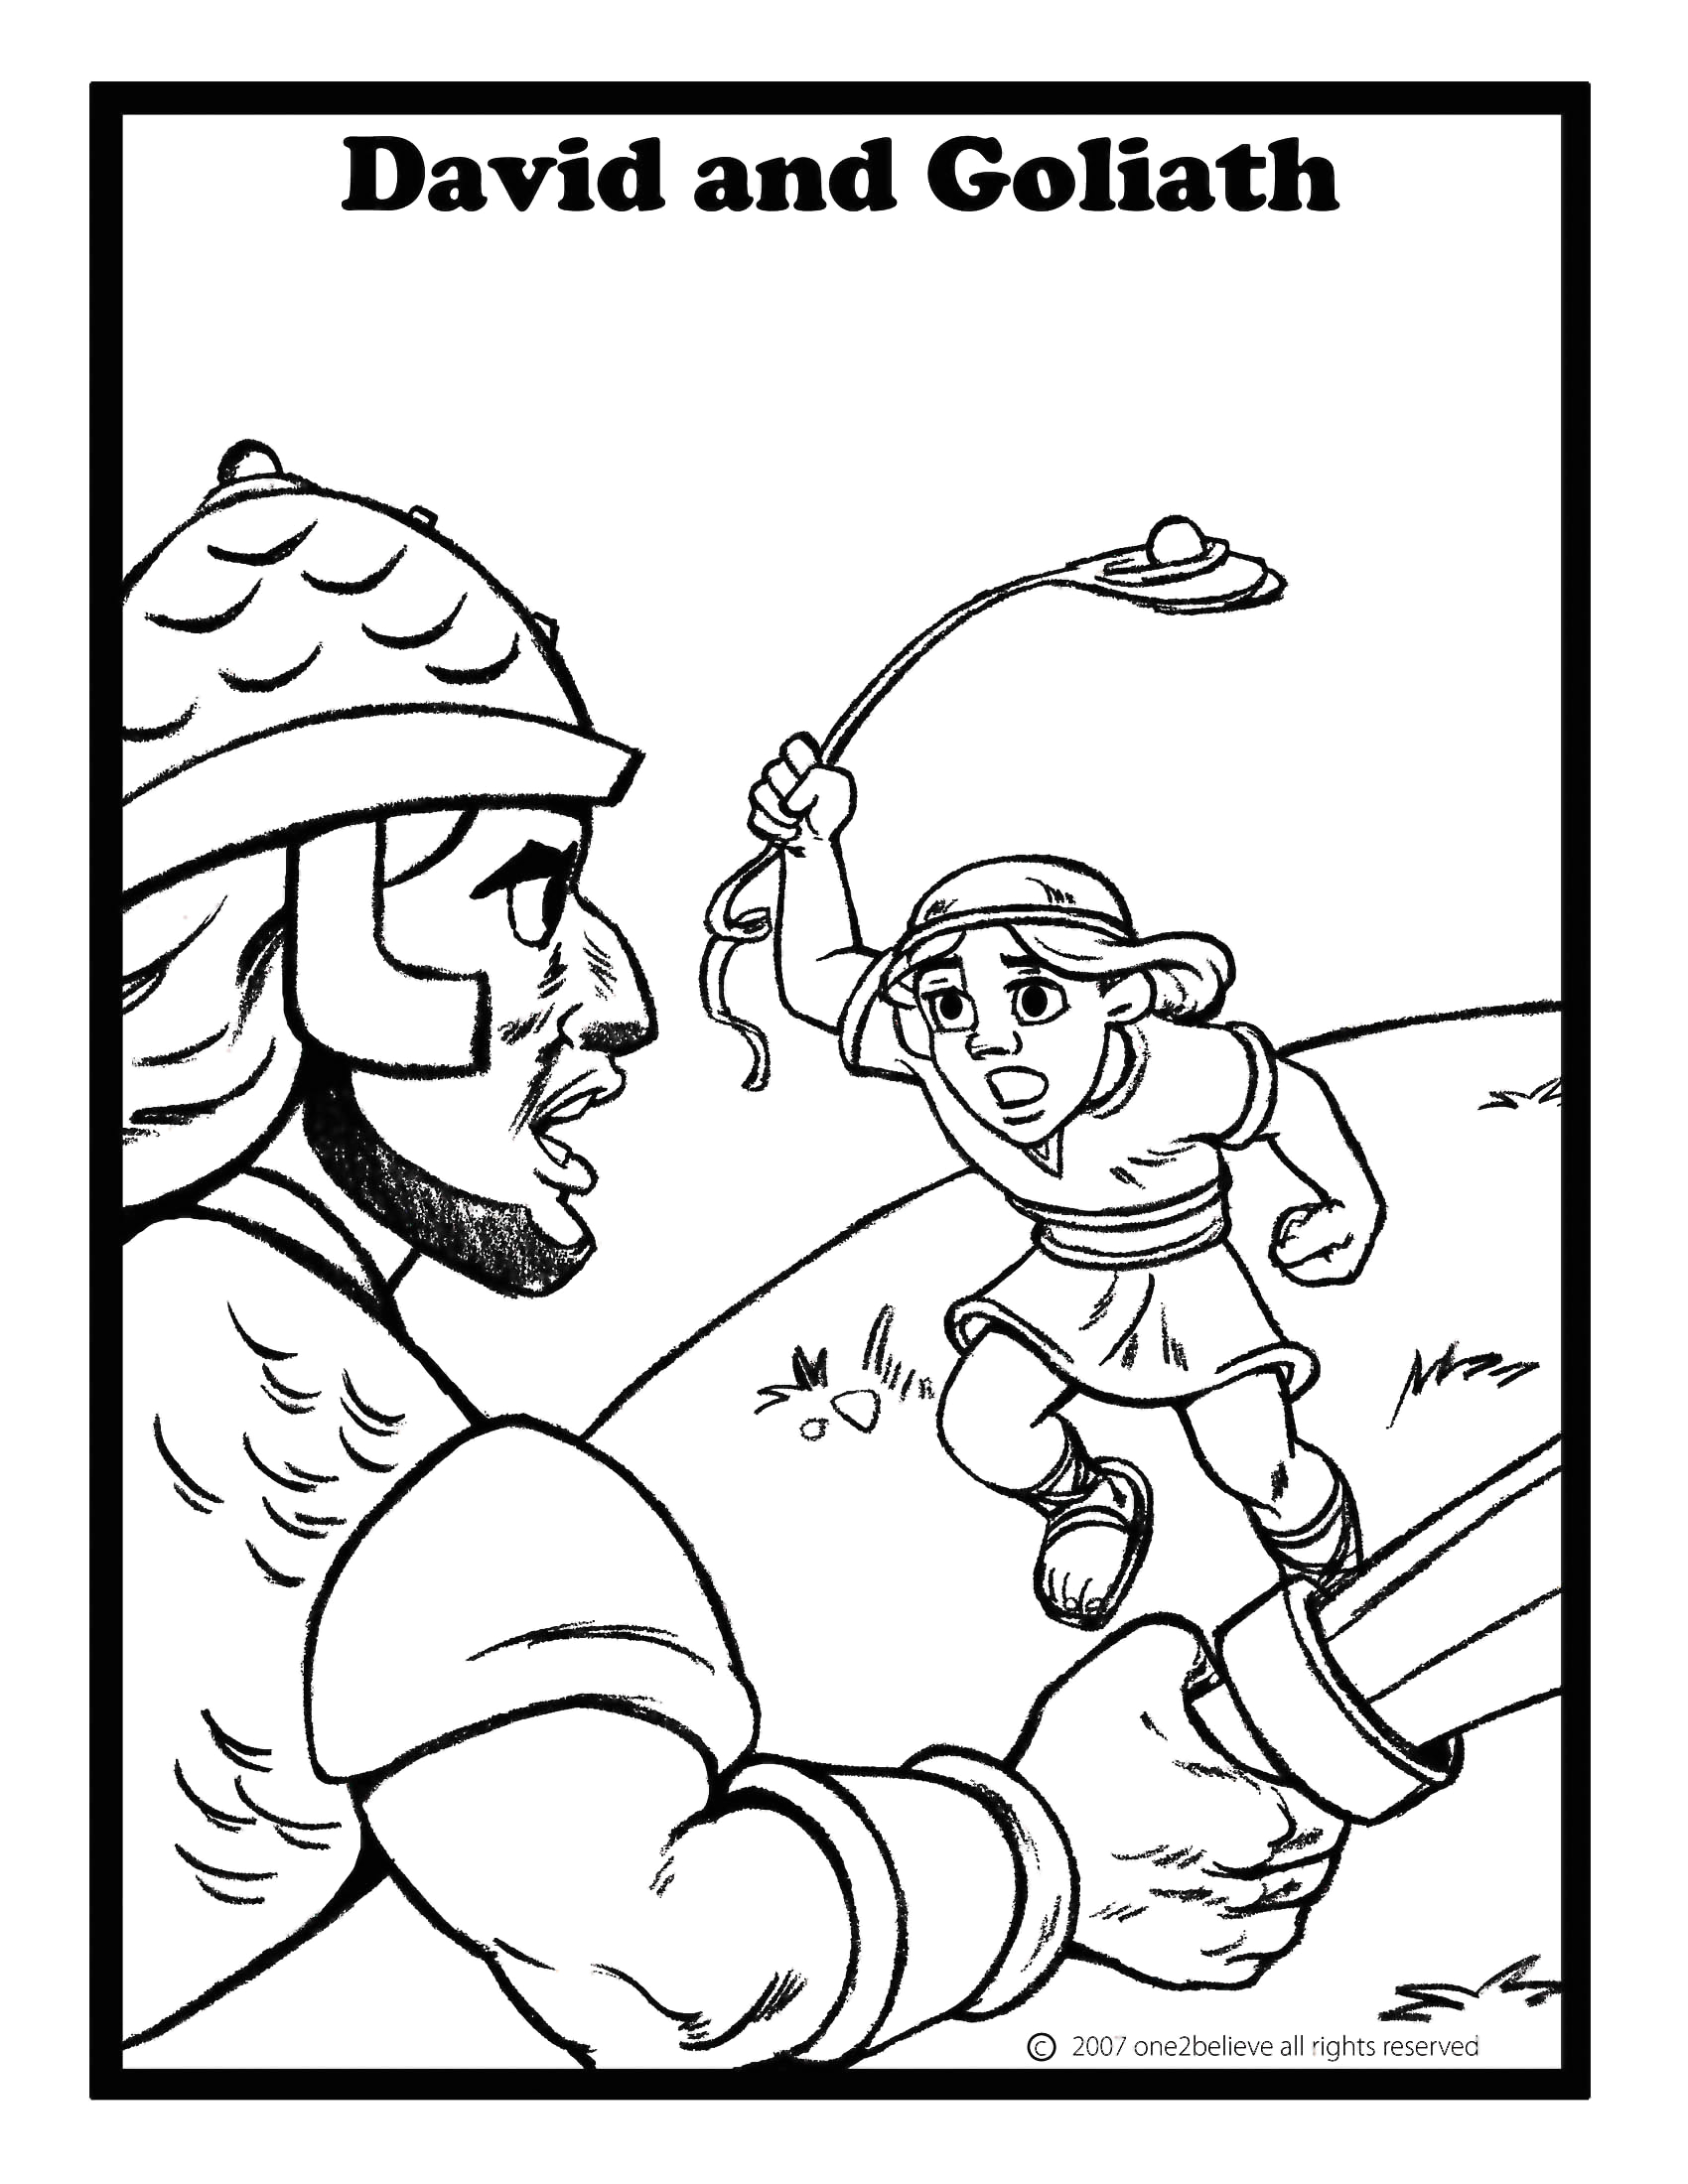 David and Goliath Coloring Pages with Story David and Goliath